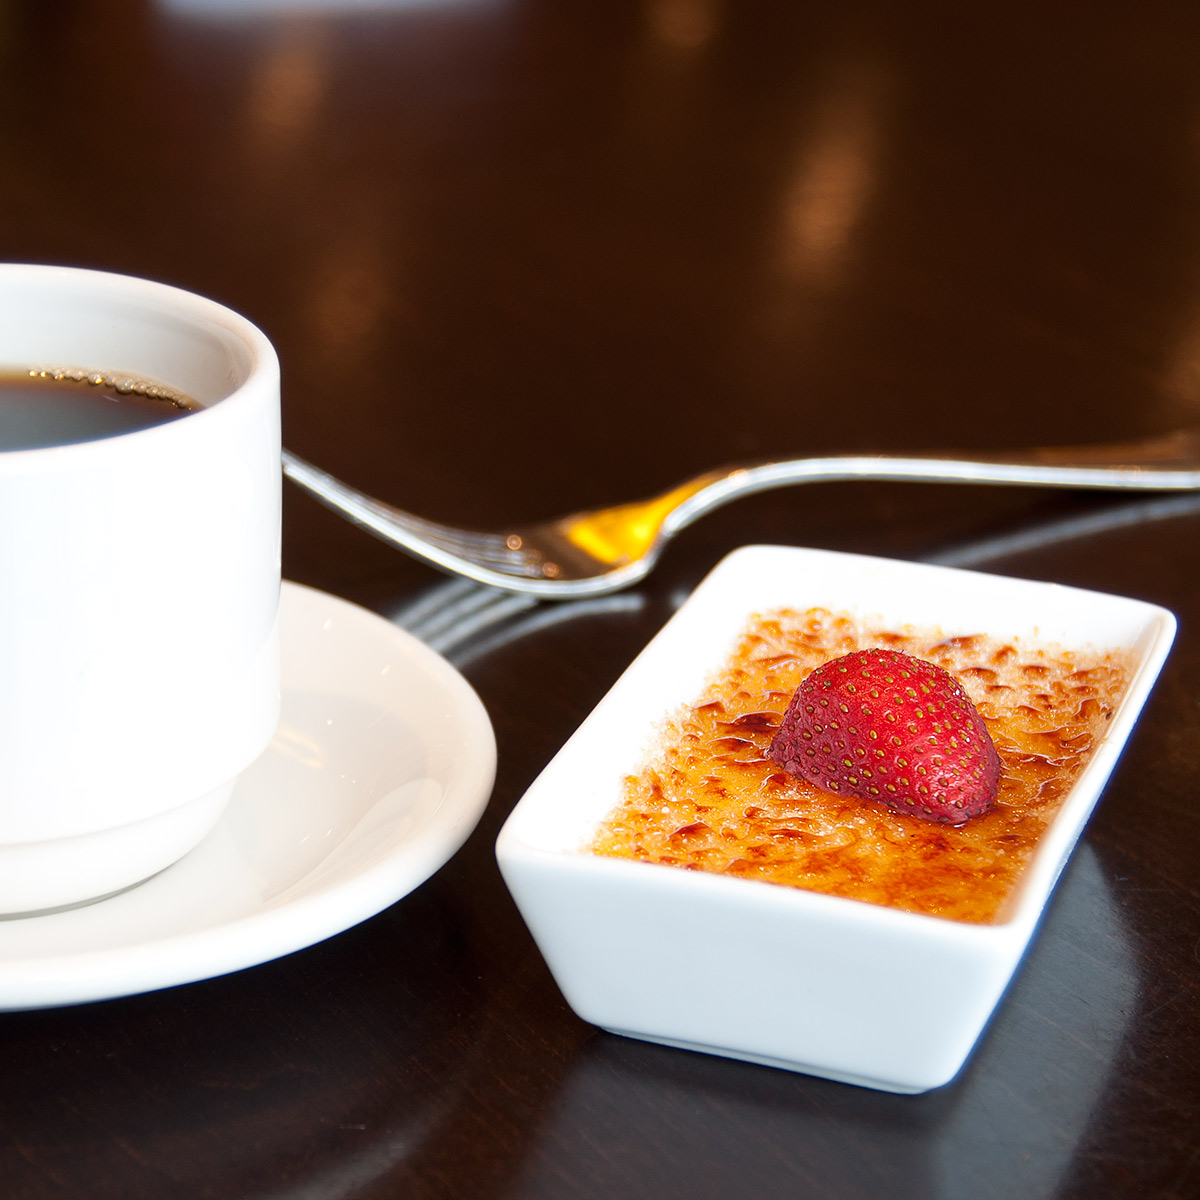 Delicious creme brulee dessert from Olives Restaurant in Mankato, Minnesota.